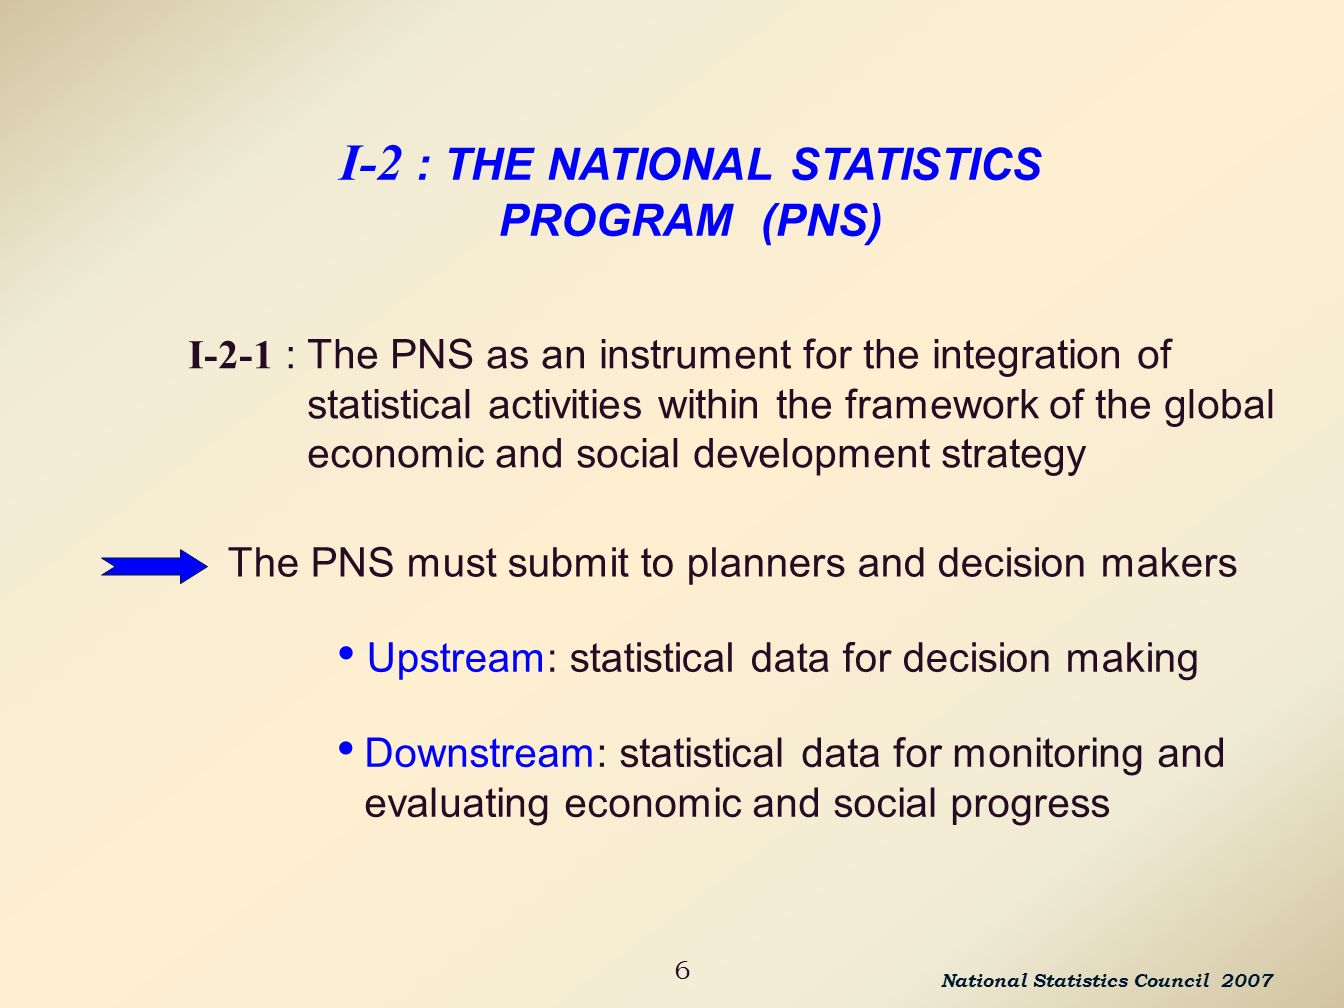 6 I-2 : THE NATIONAL STATISTICS PROGRAM (PNS) I-2-1 : The PNS as an instrument for the integration of statistical activities within the framework of the global economic and social development strategy National Statistics Council 2007 The PNS must submit to planners and decision makers Upstream: statistical data for decision making Downstream: statistical data for monitoring and evaluating economic and social progress